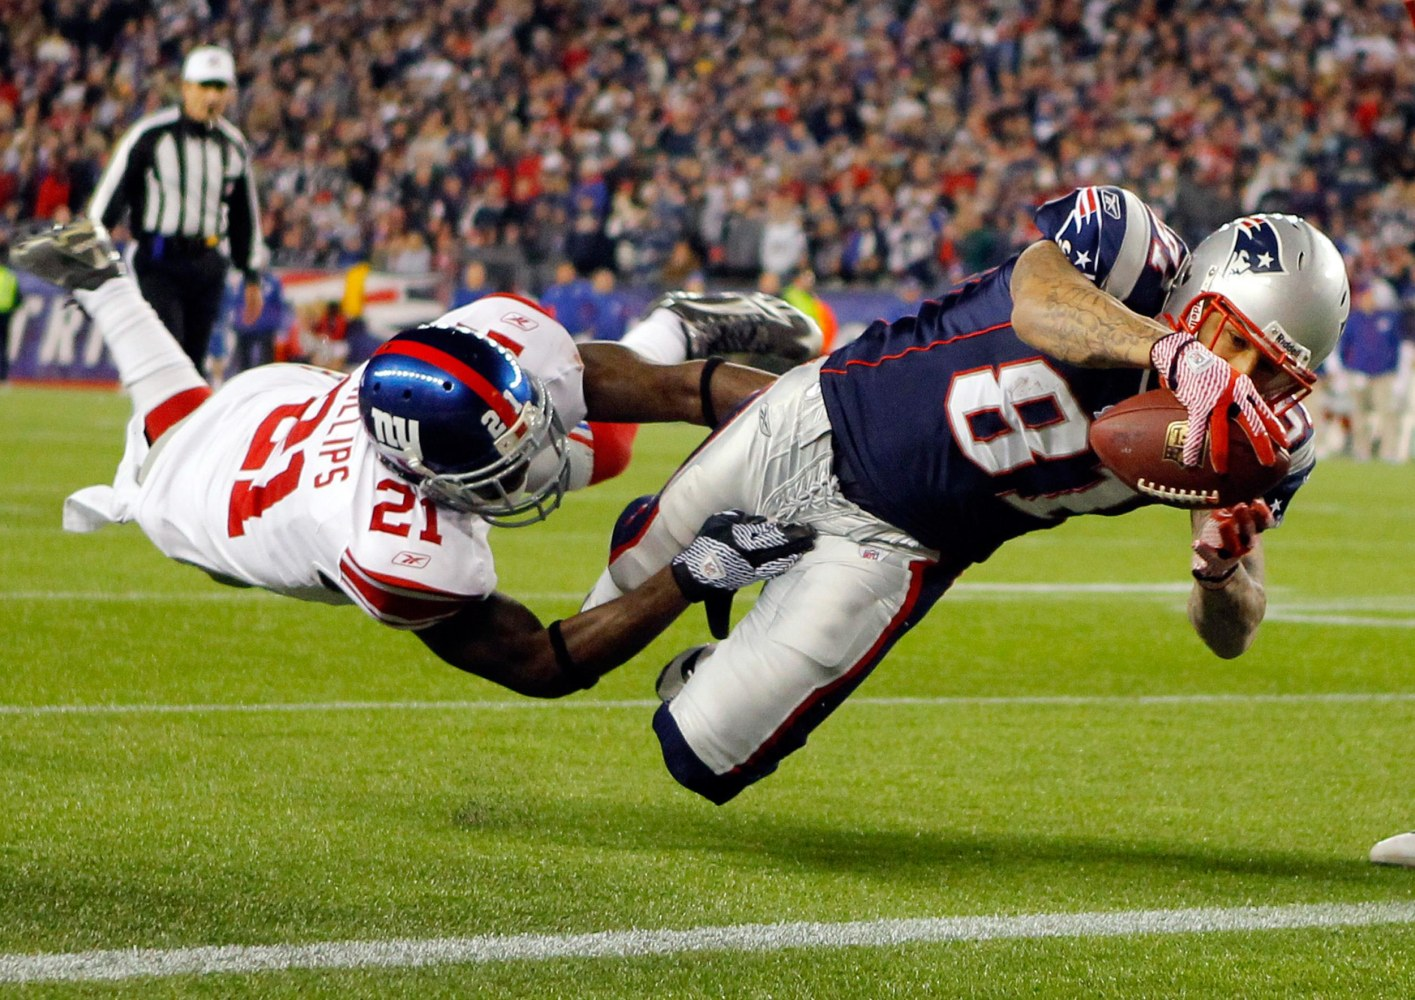 Aaron hernandez was cut by the new england patriots after he was - Image Hernandez Dives Into The End Zone For A Touchdown Through The Arms Of New